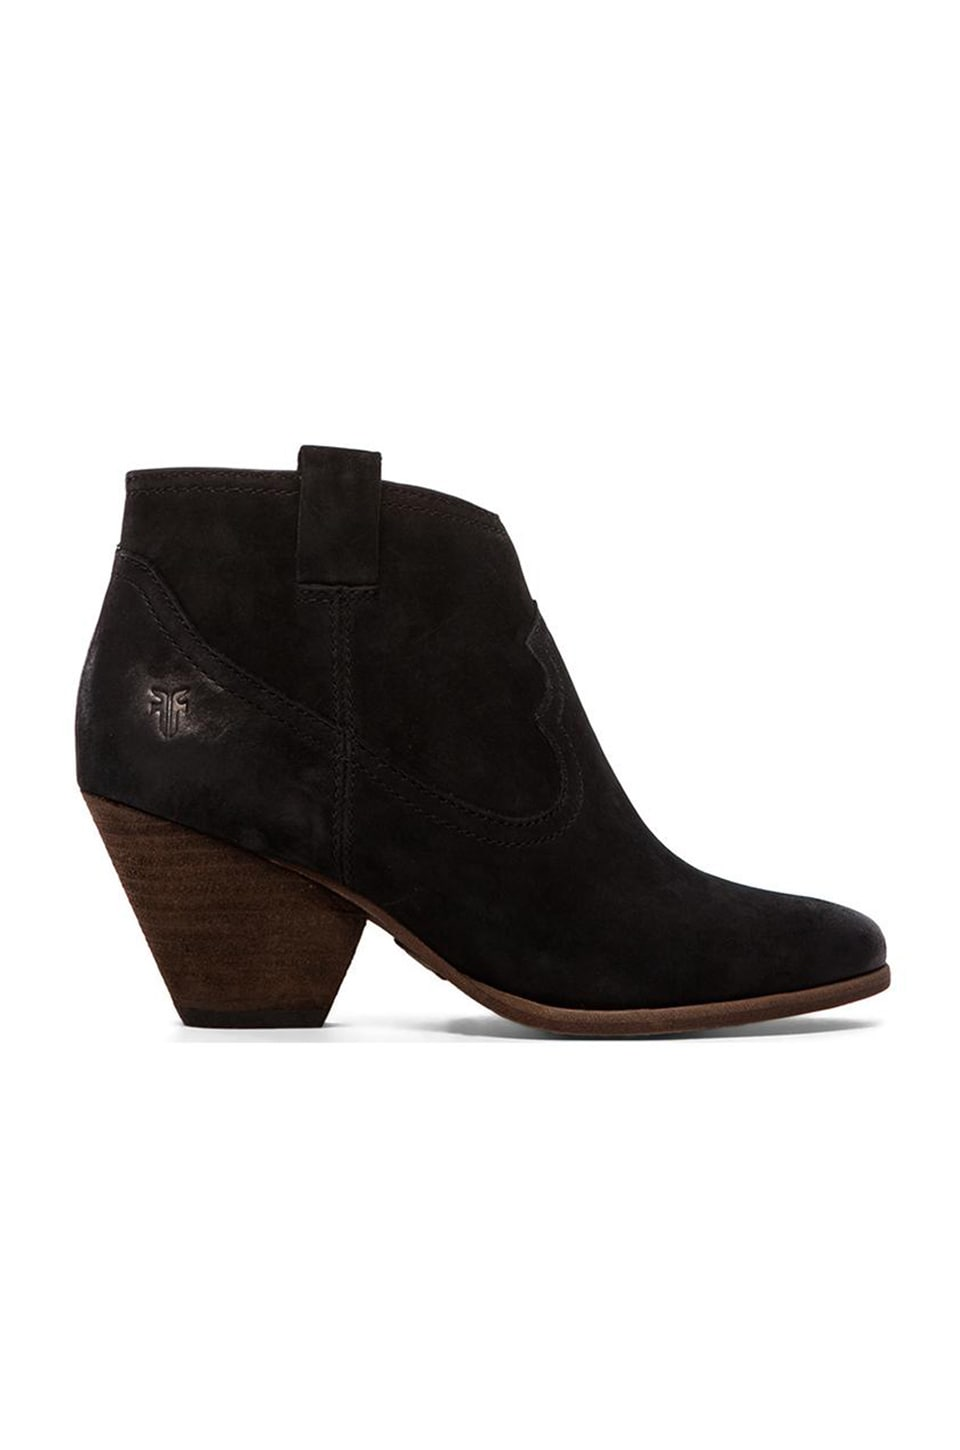 Frye Reina Bootie in Black